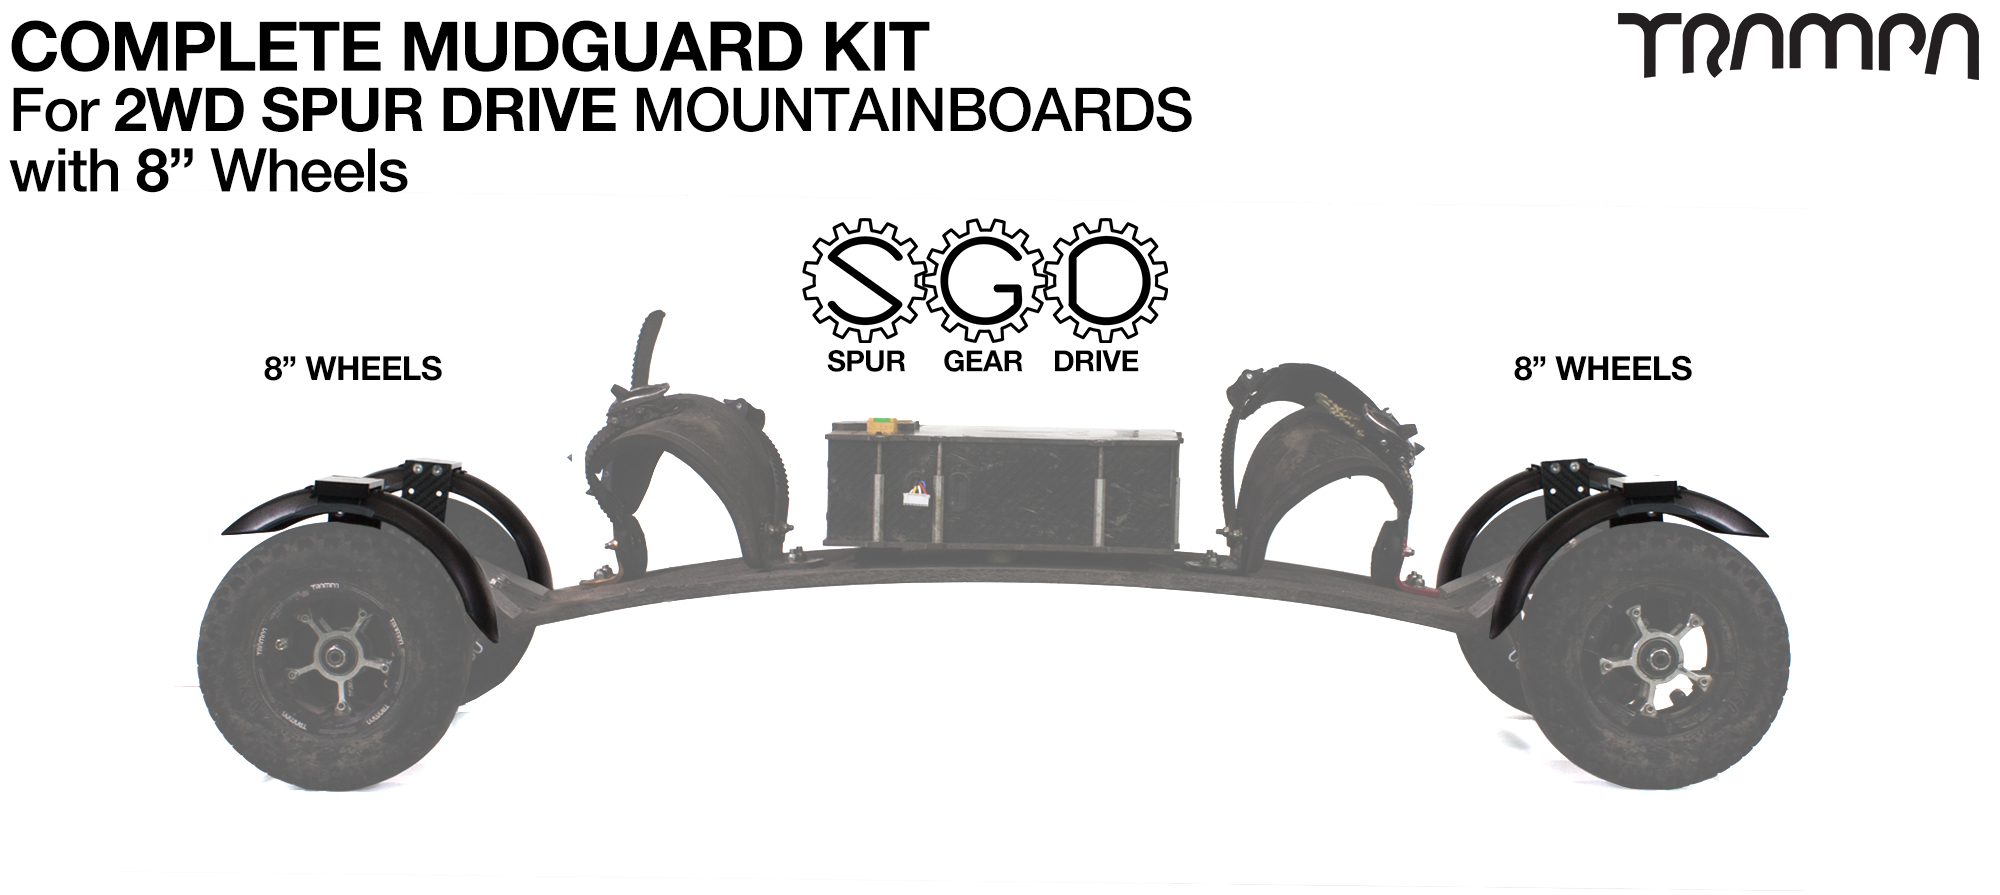 """Full Mudguard Kit for 2WD SPUR GEAR DRIVE Mountainboards - 8"""" Wheels All round"""